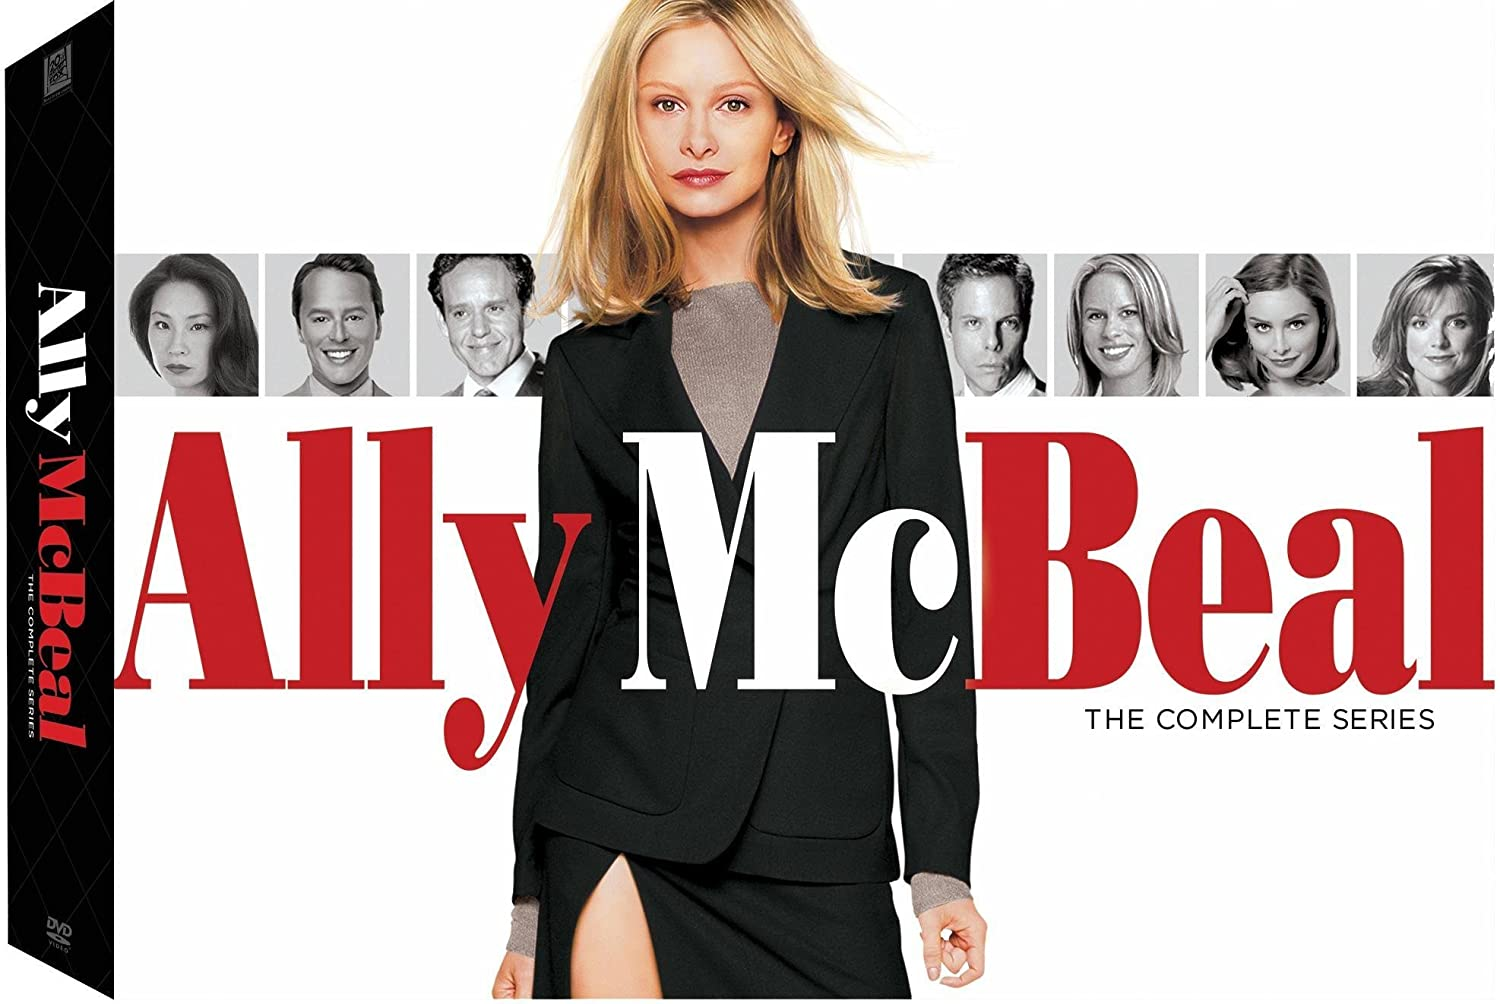 Ally Mcbeal: Complete Series [DVD] [Import] B002DYJ520